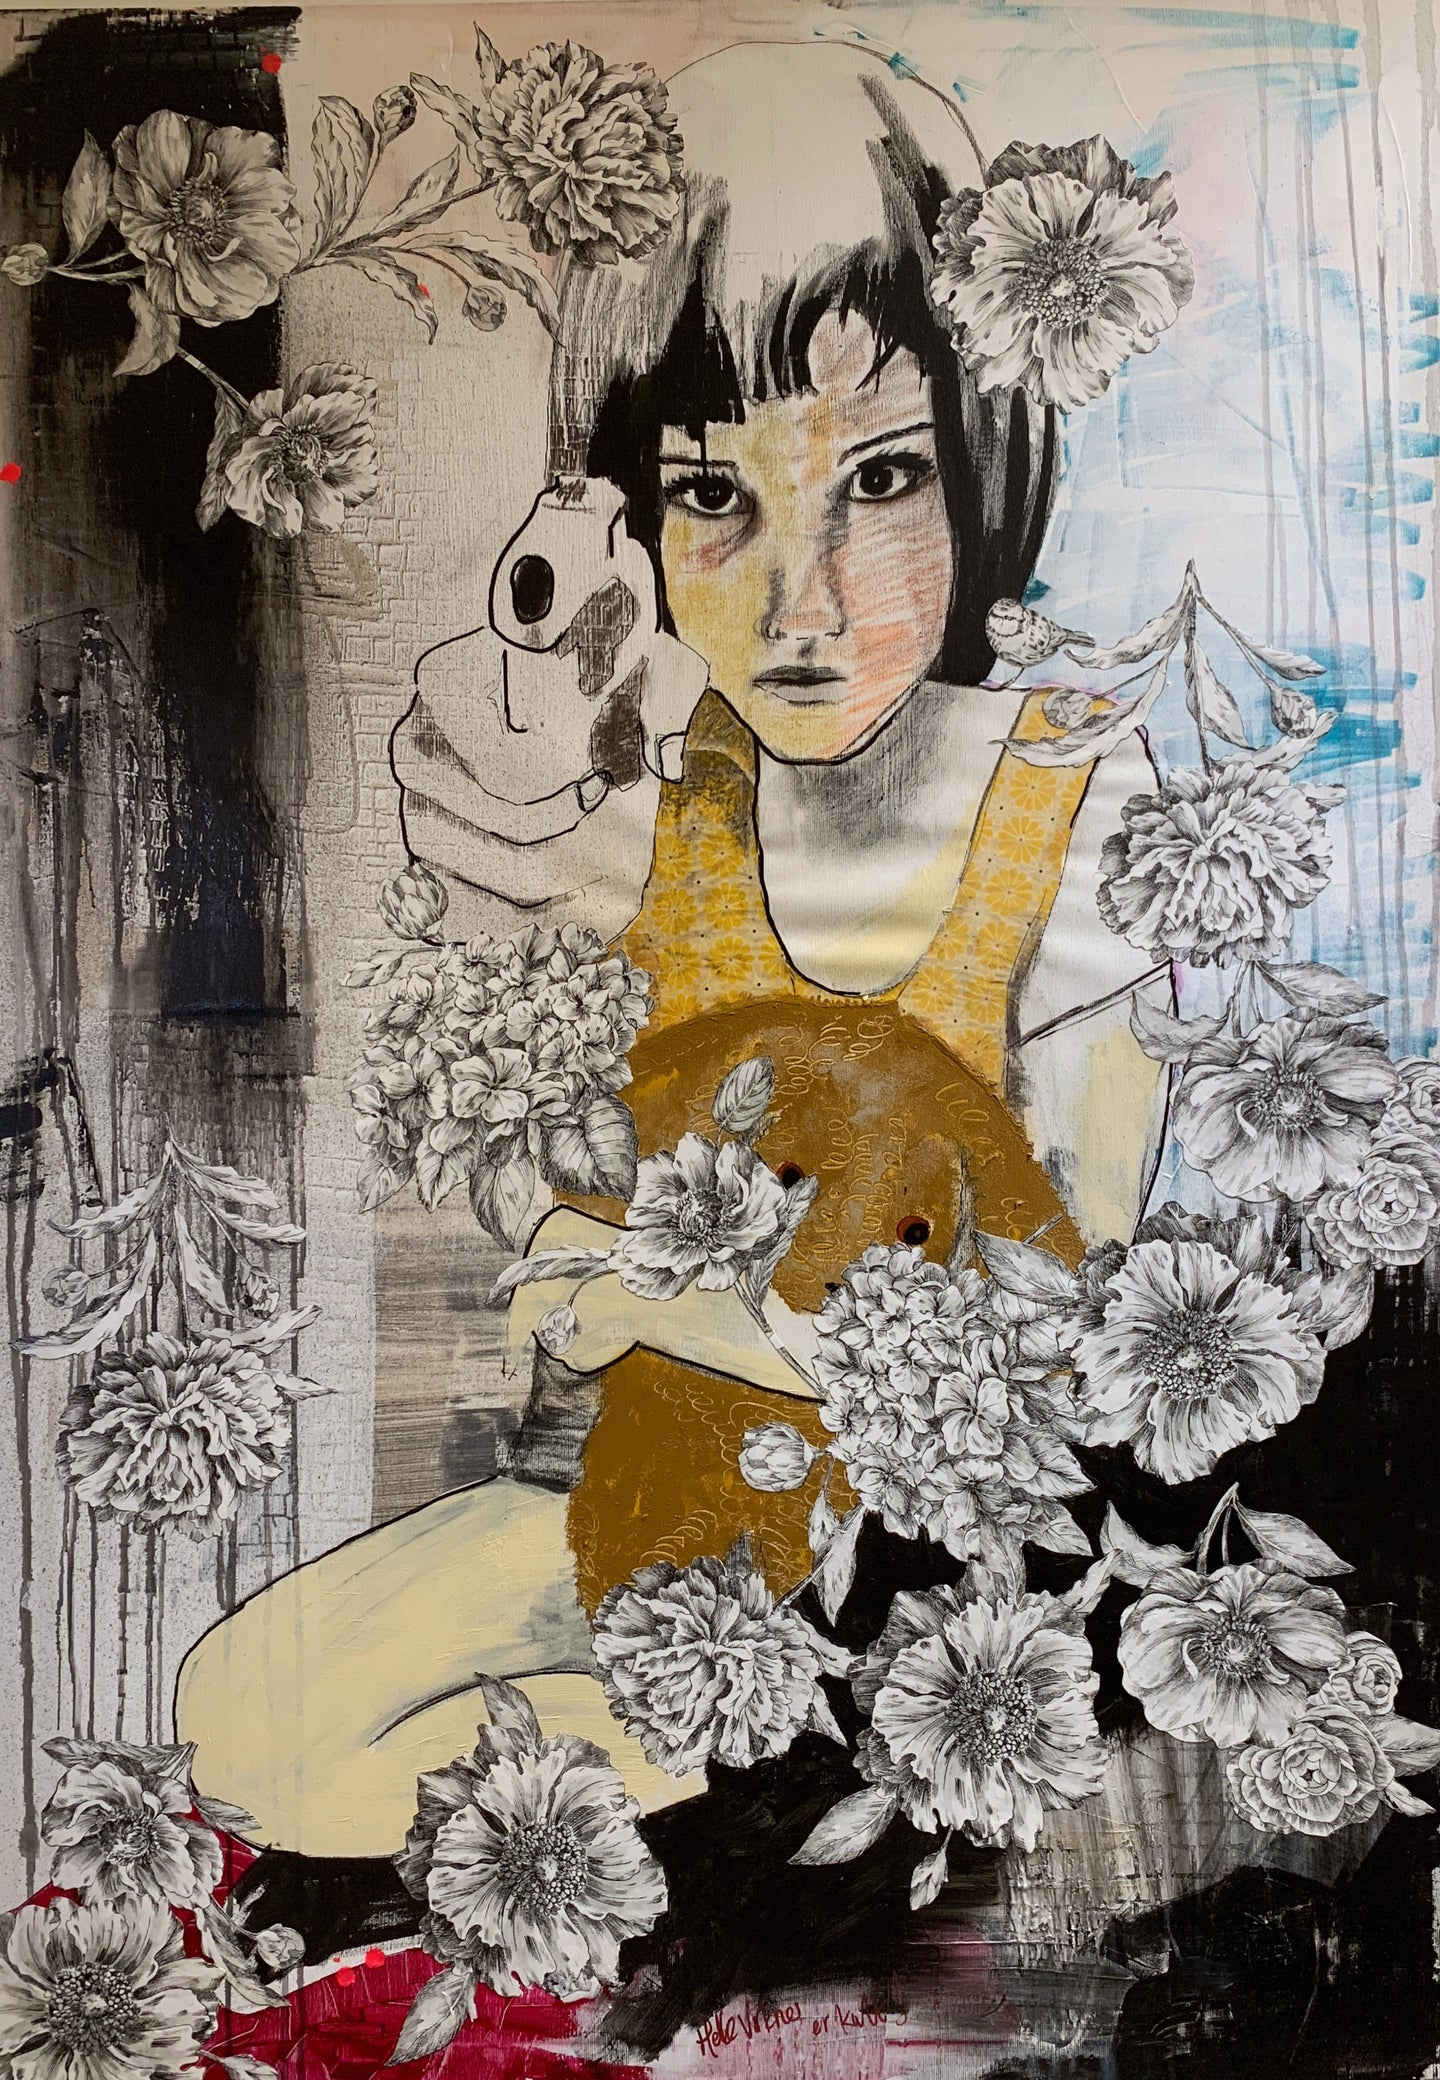 Girl With a Gun, 100x140 cm